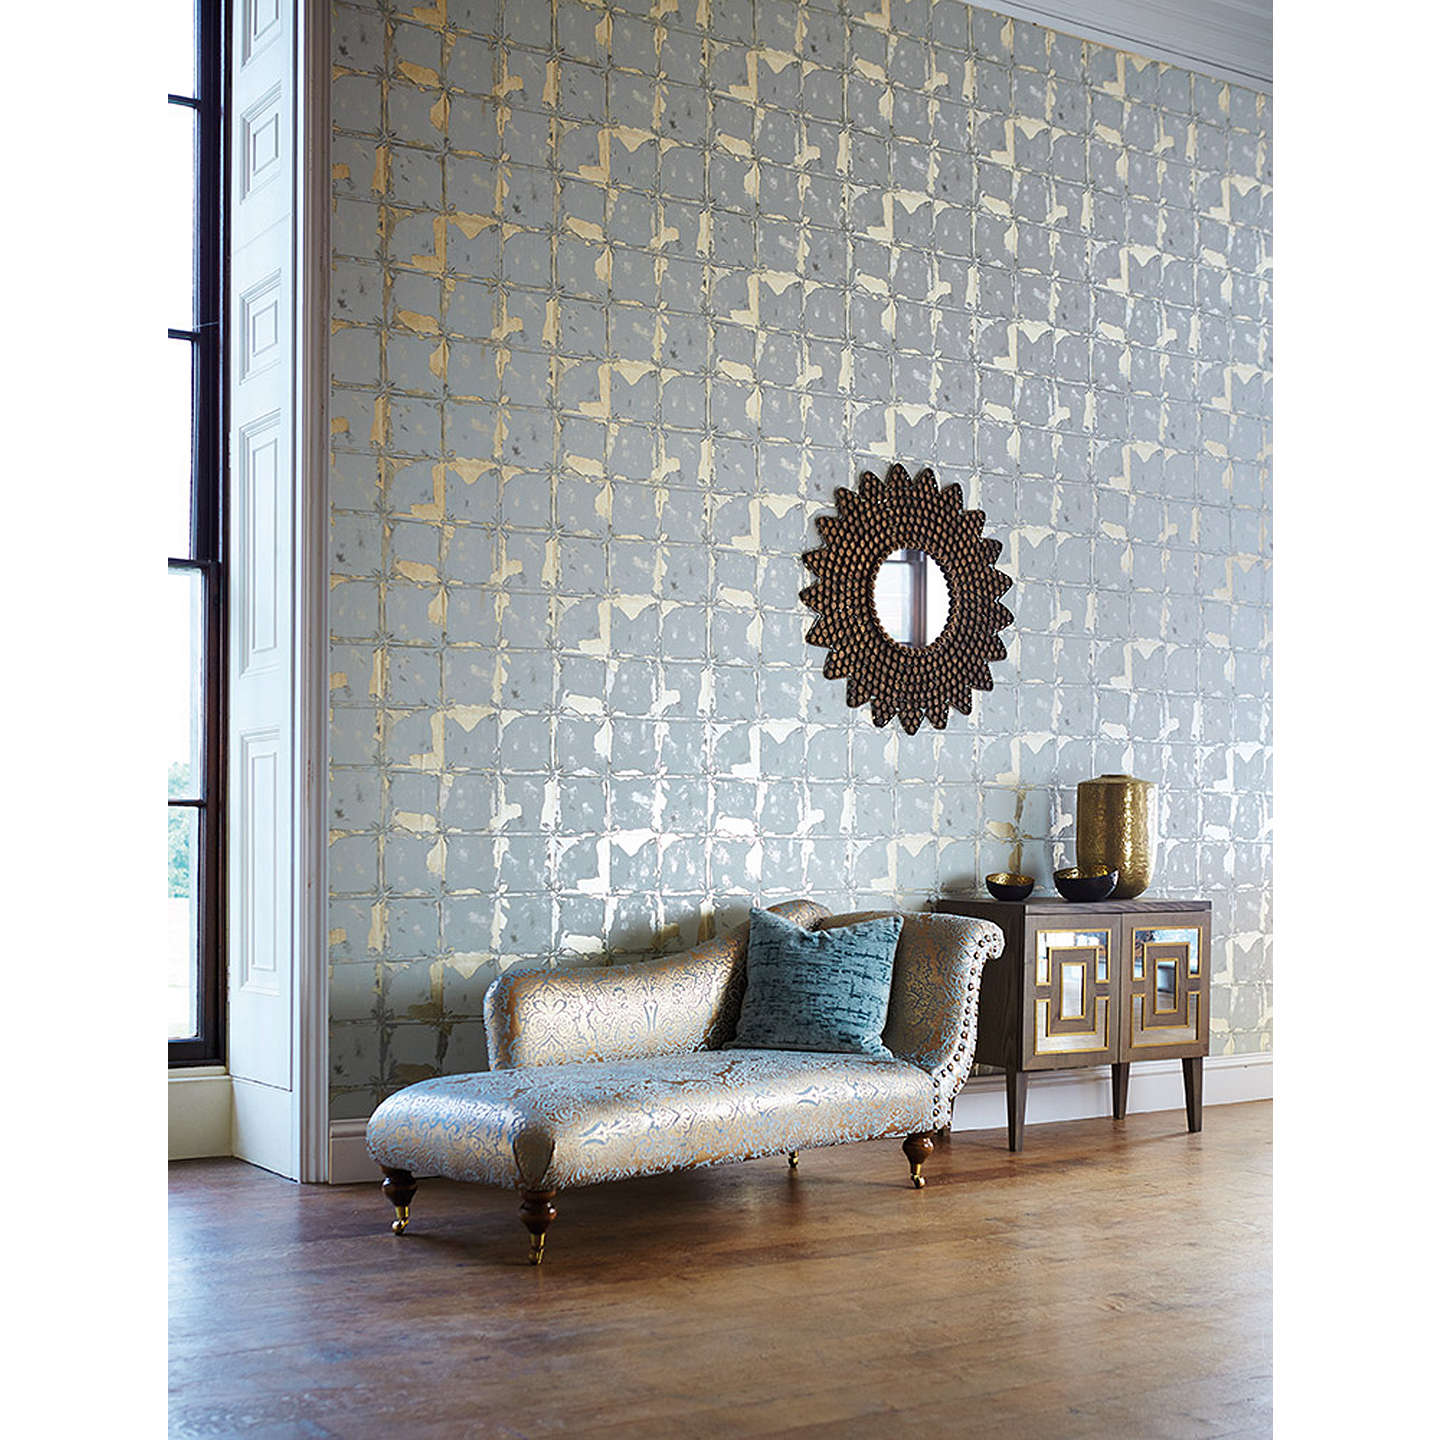 BuyHarlequin Akoa Paste The Wall Wallpaper Antique Gold 110636 Online At Johnlewis